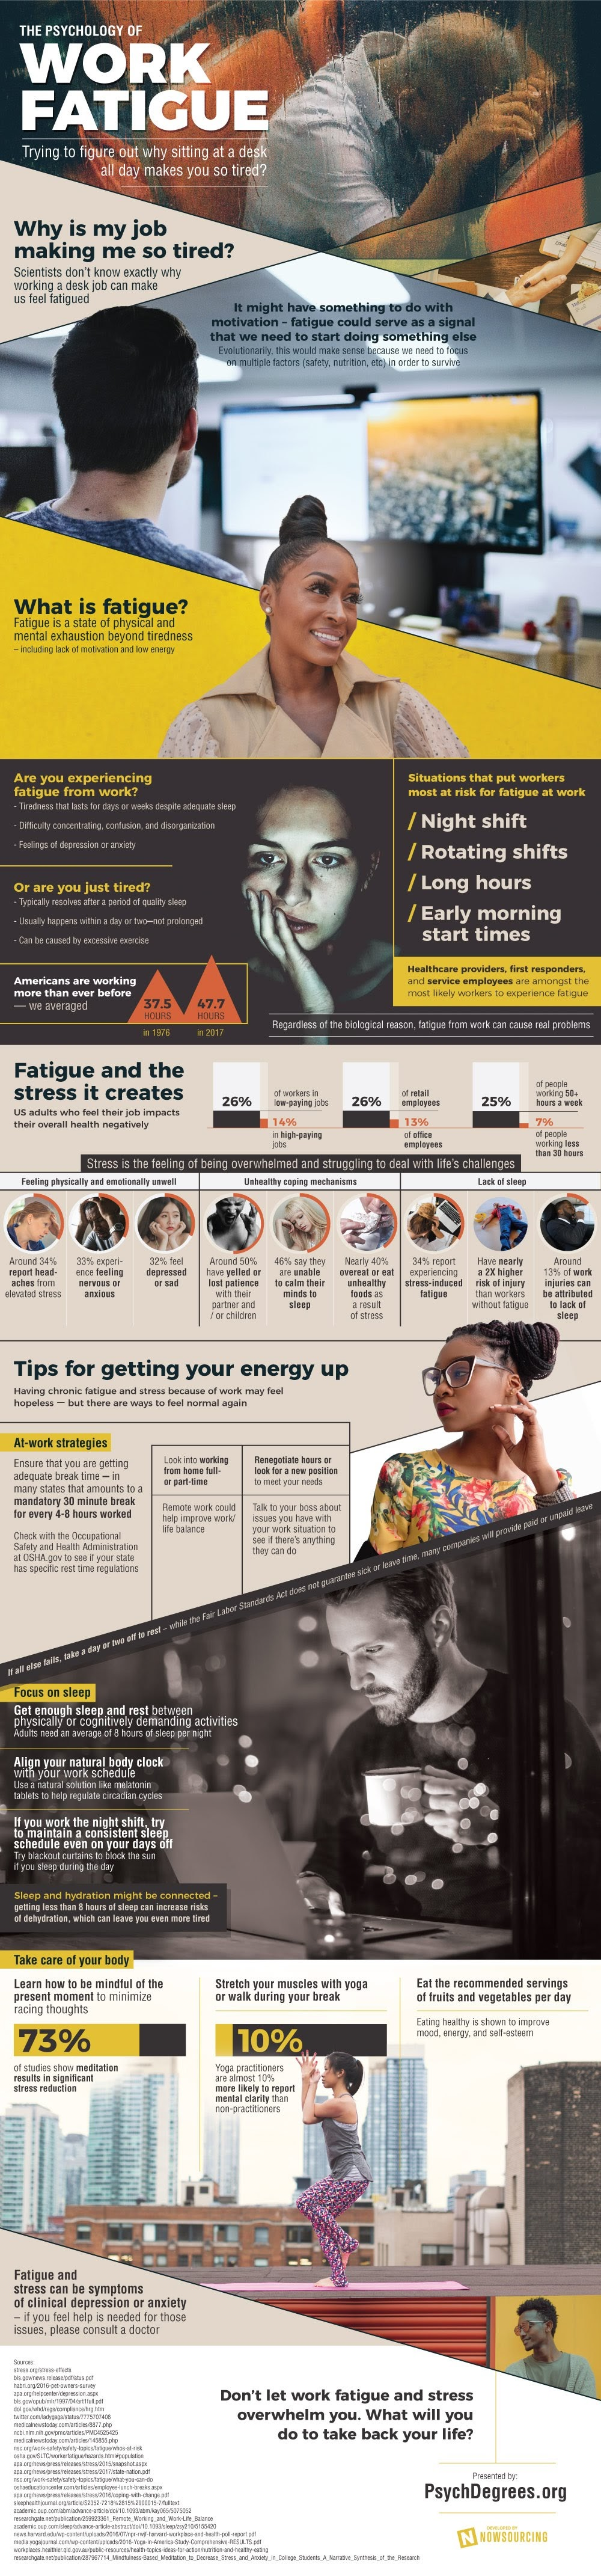 Psychology of Work Fatigue #infographic